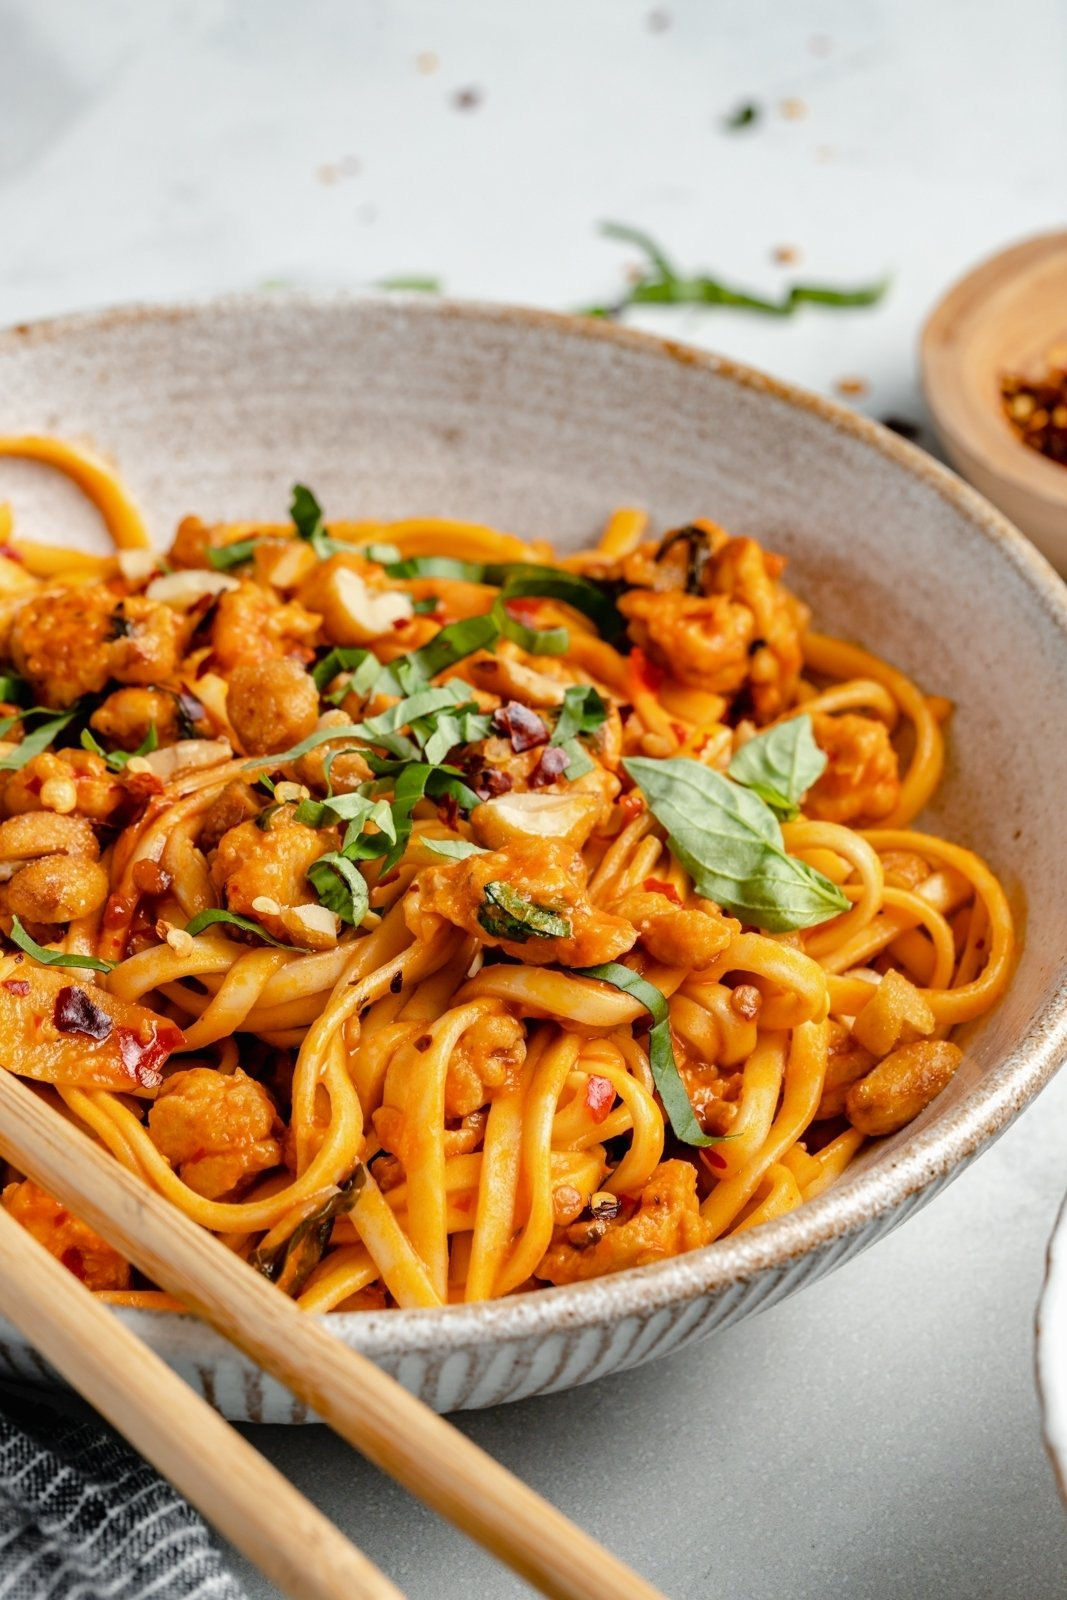 sweet and spicy chicken noodles in a bowl topped with peanuts and basil